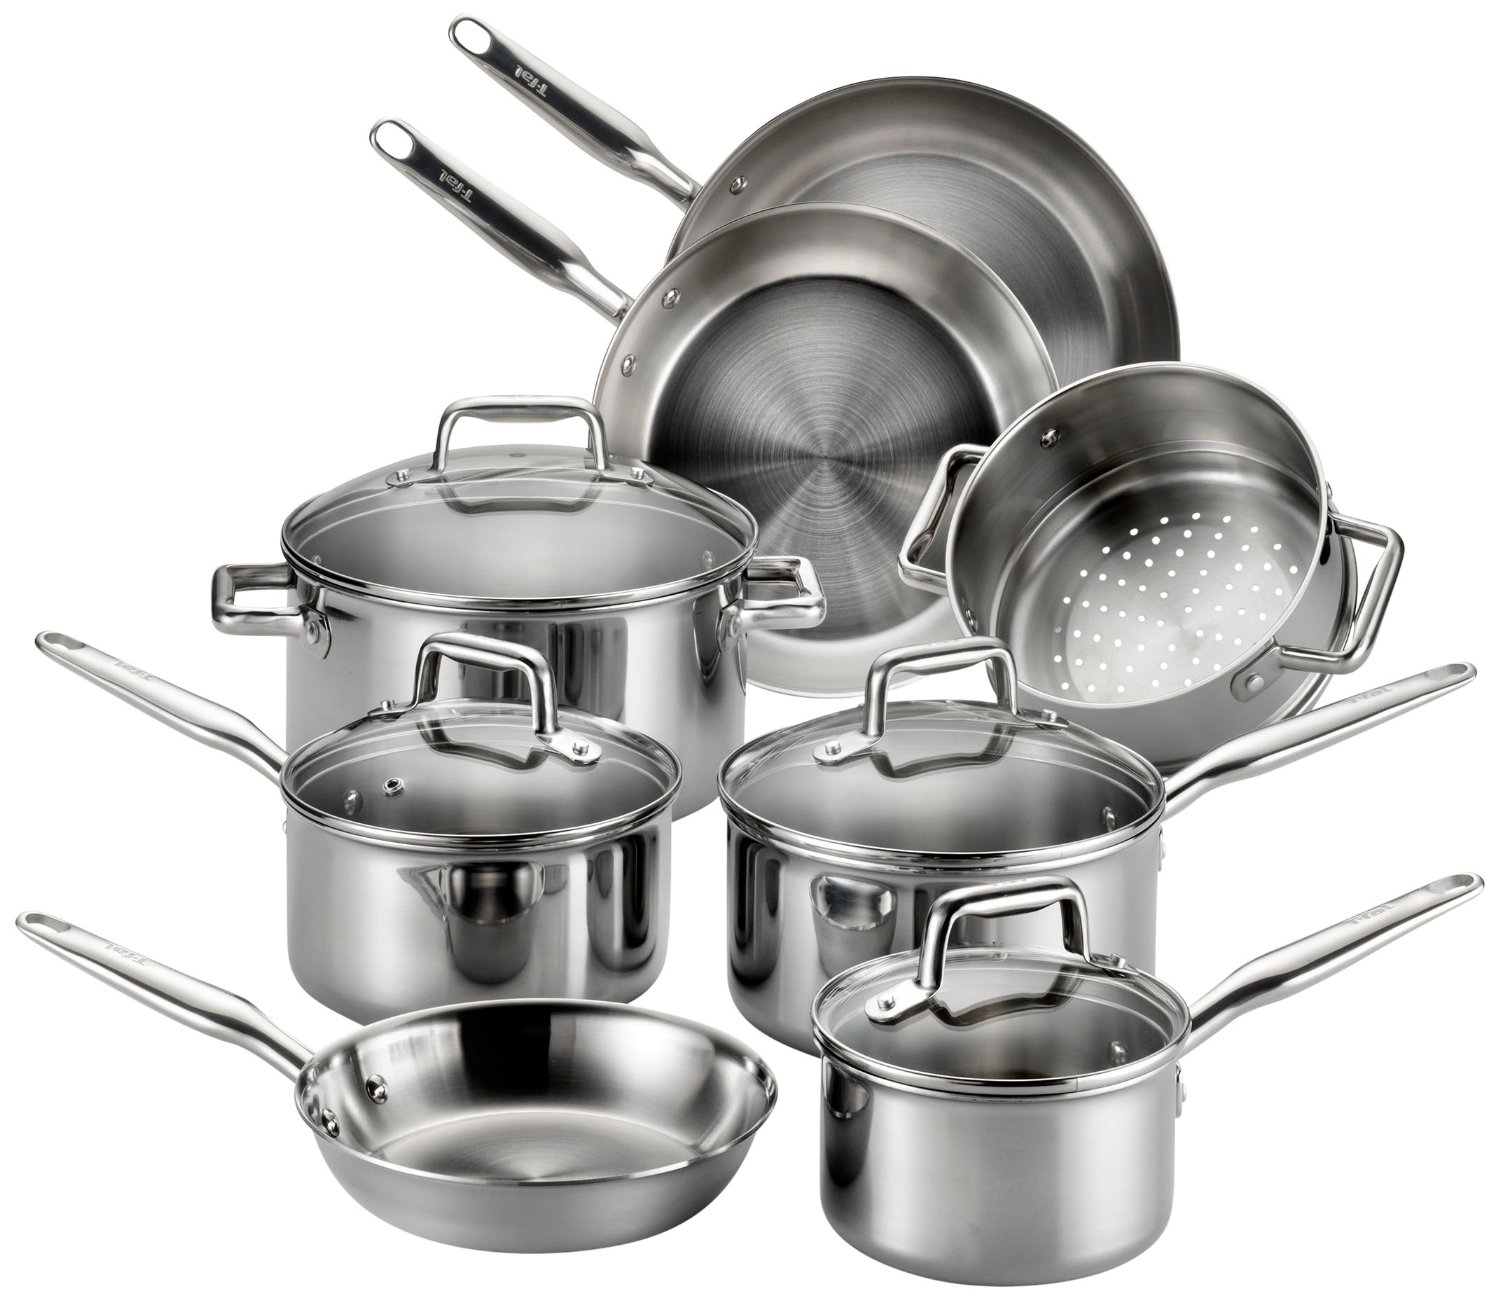 T-fal Tri-ply Stainless Steel Multi-Clad Cookware Review